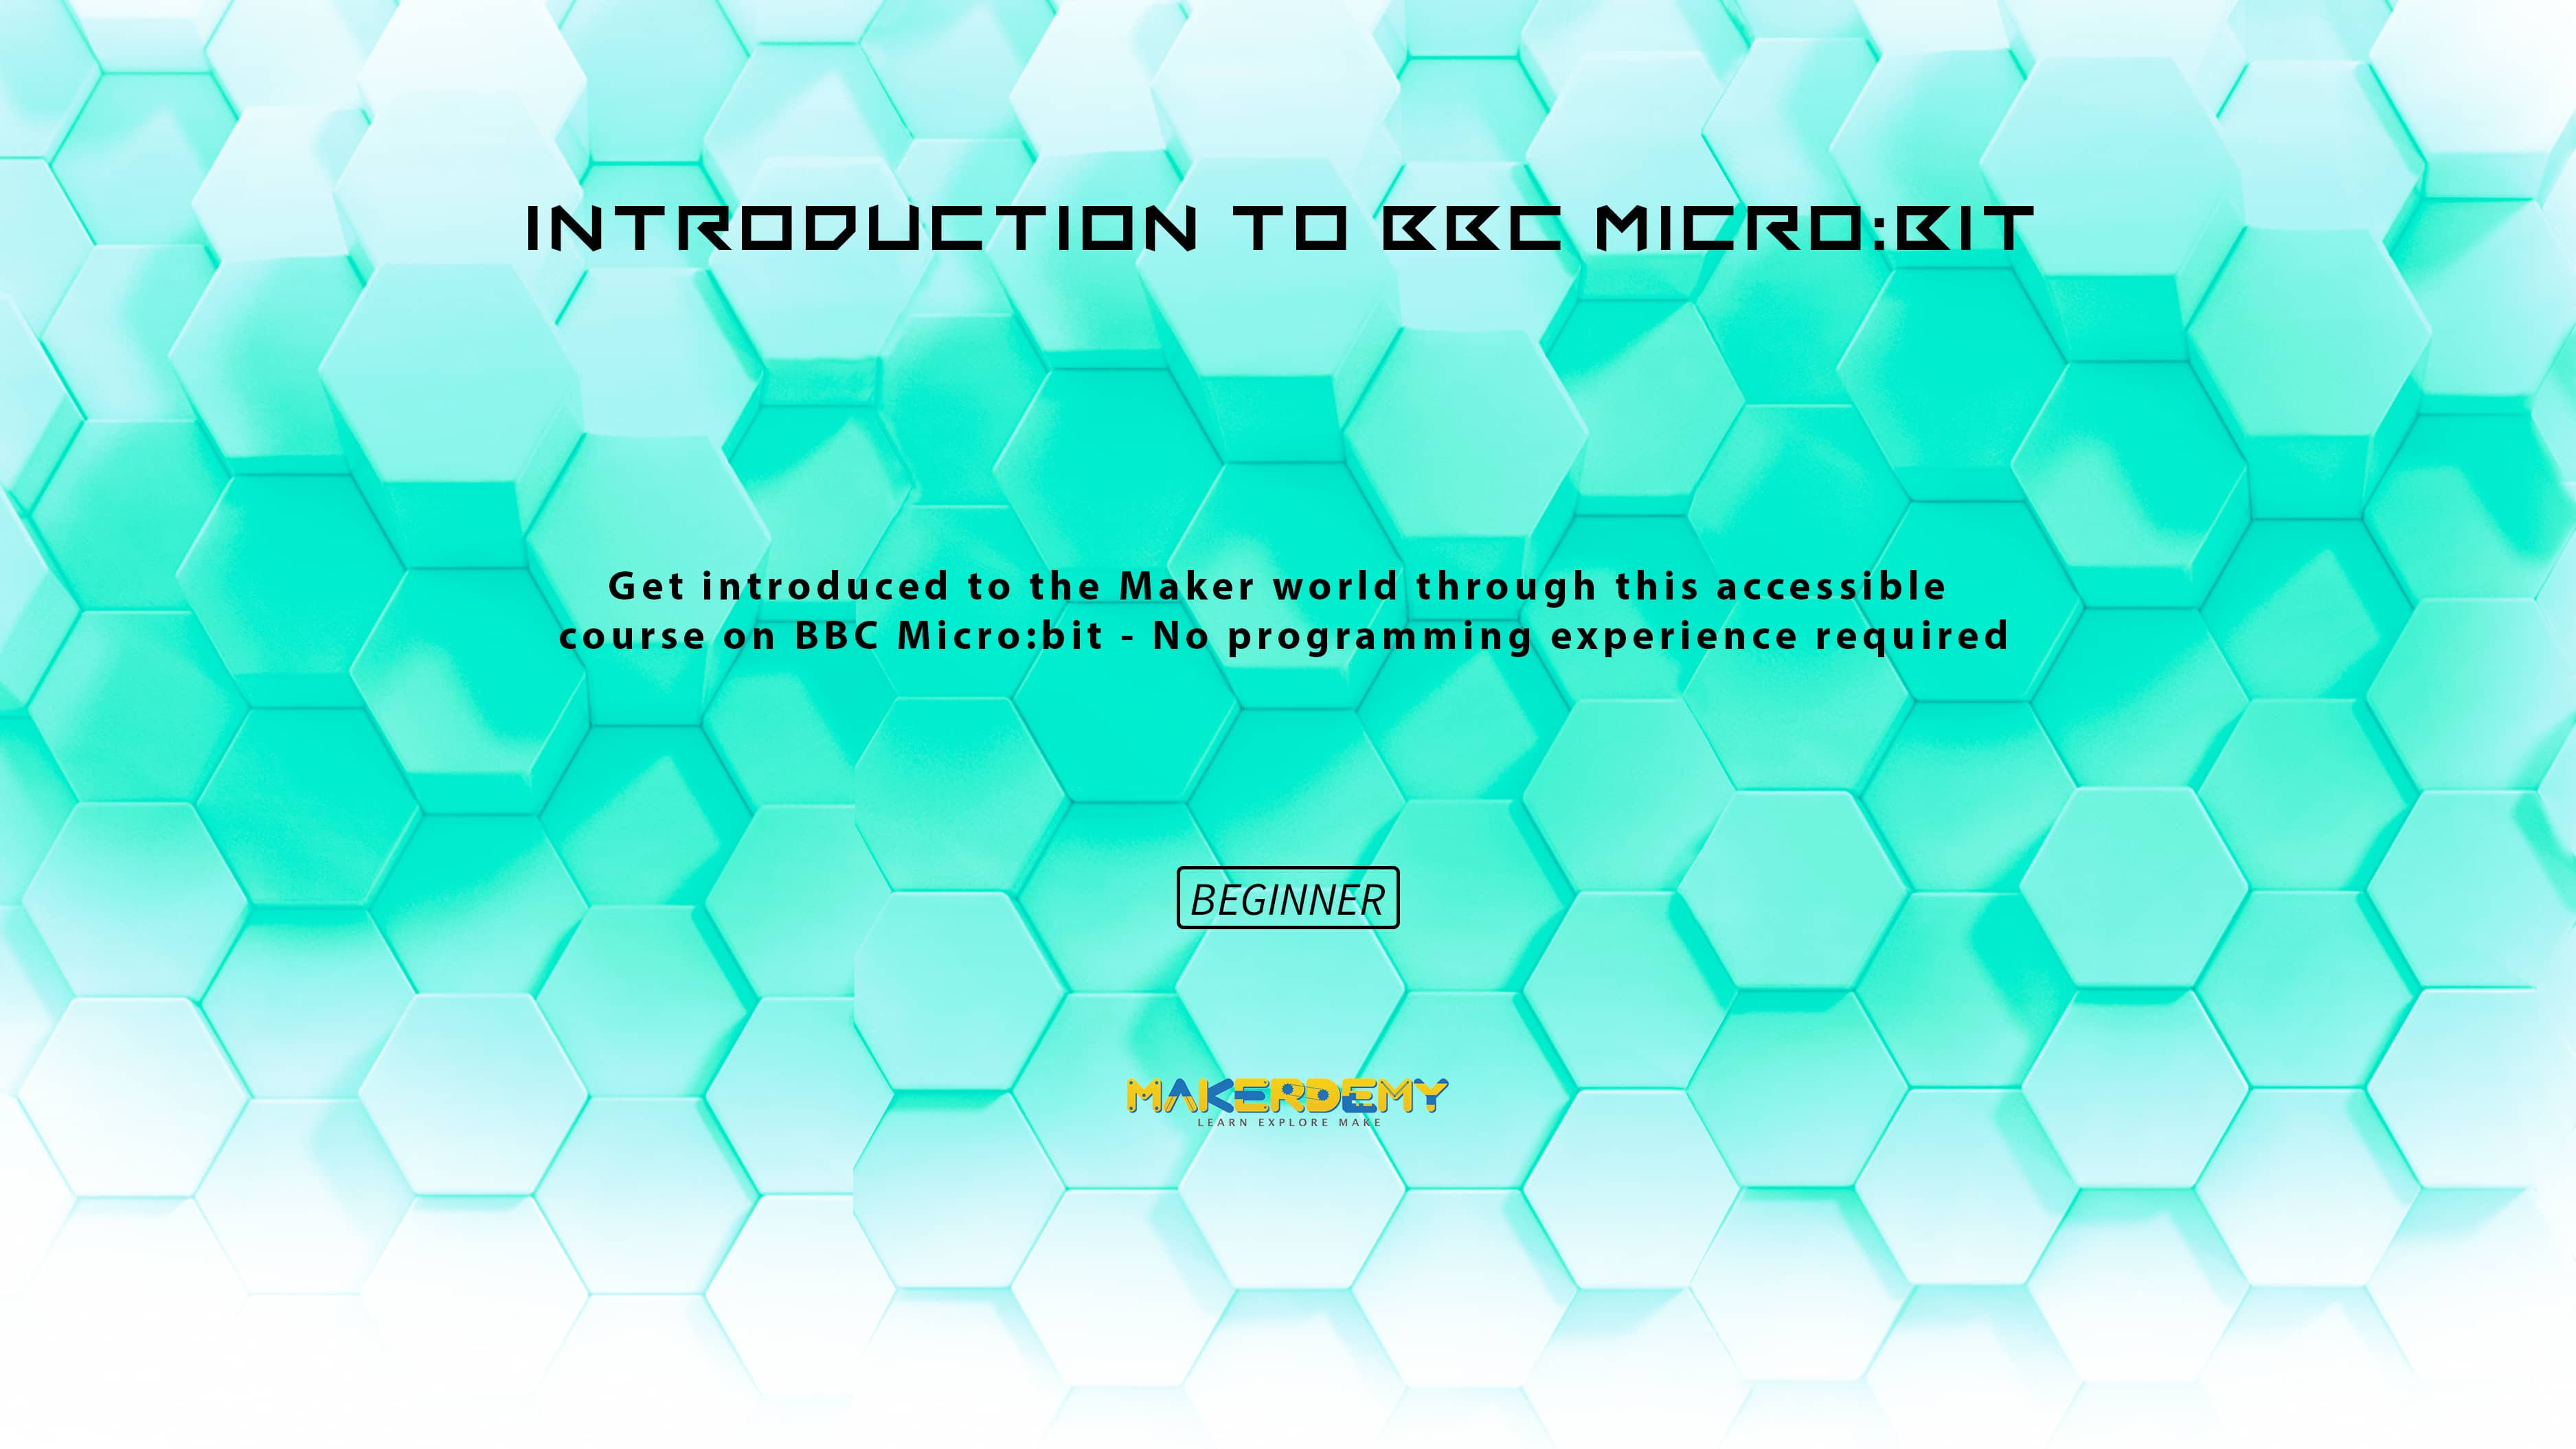 Introduction to BBC Micro:bit